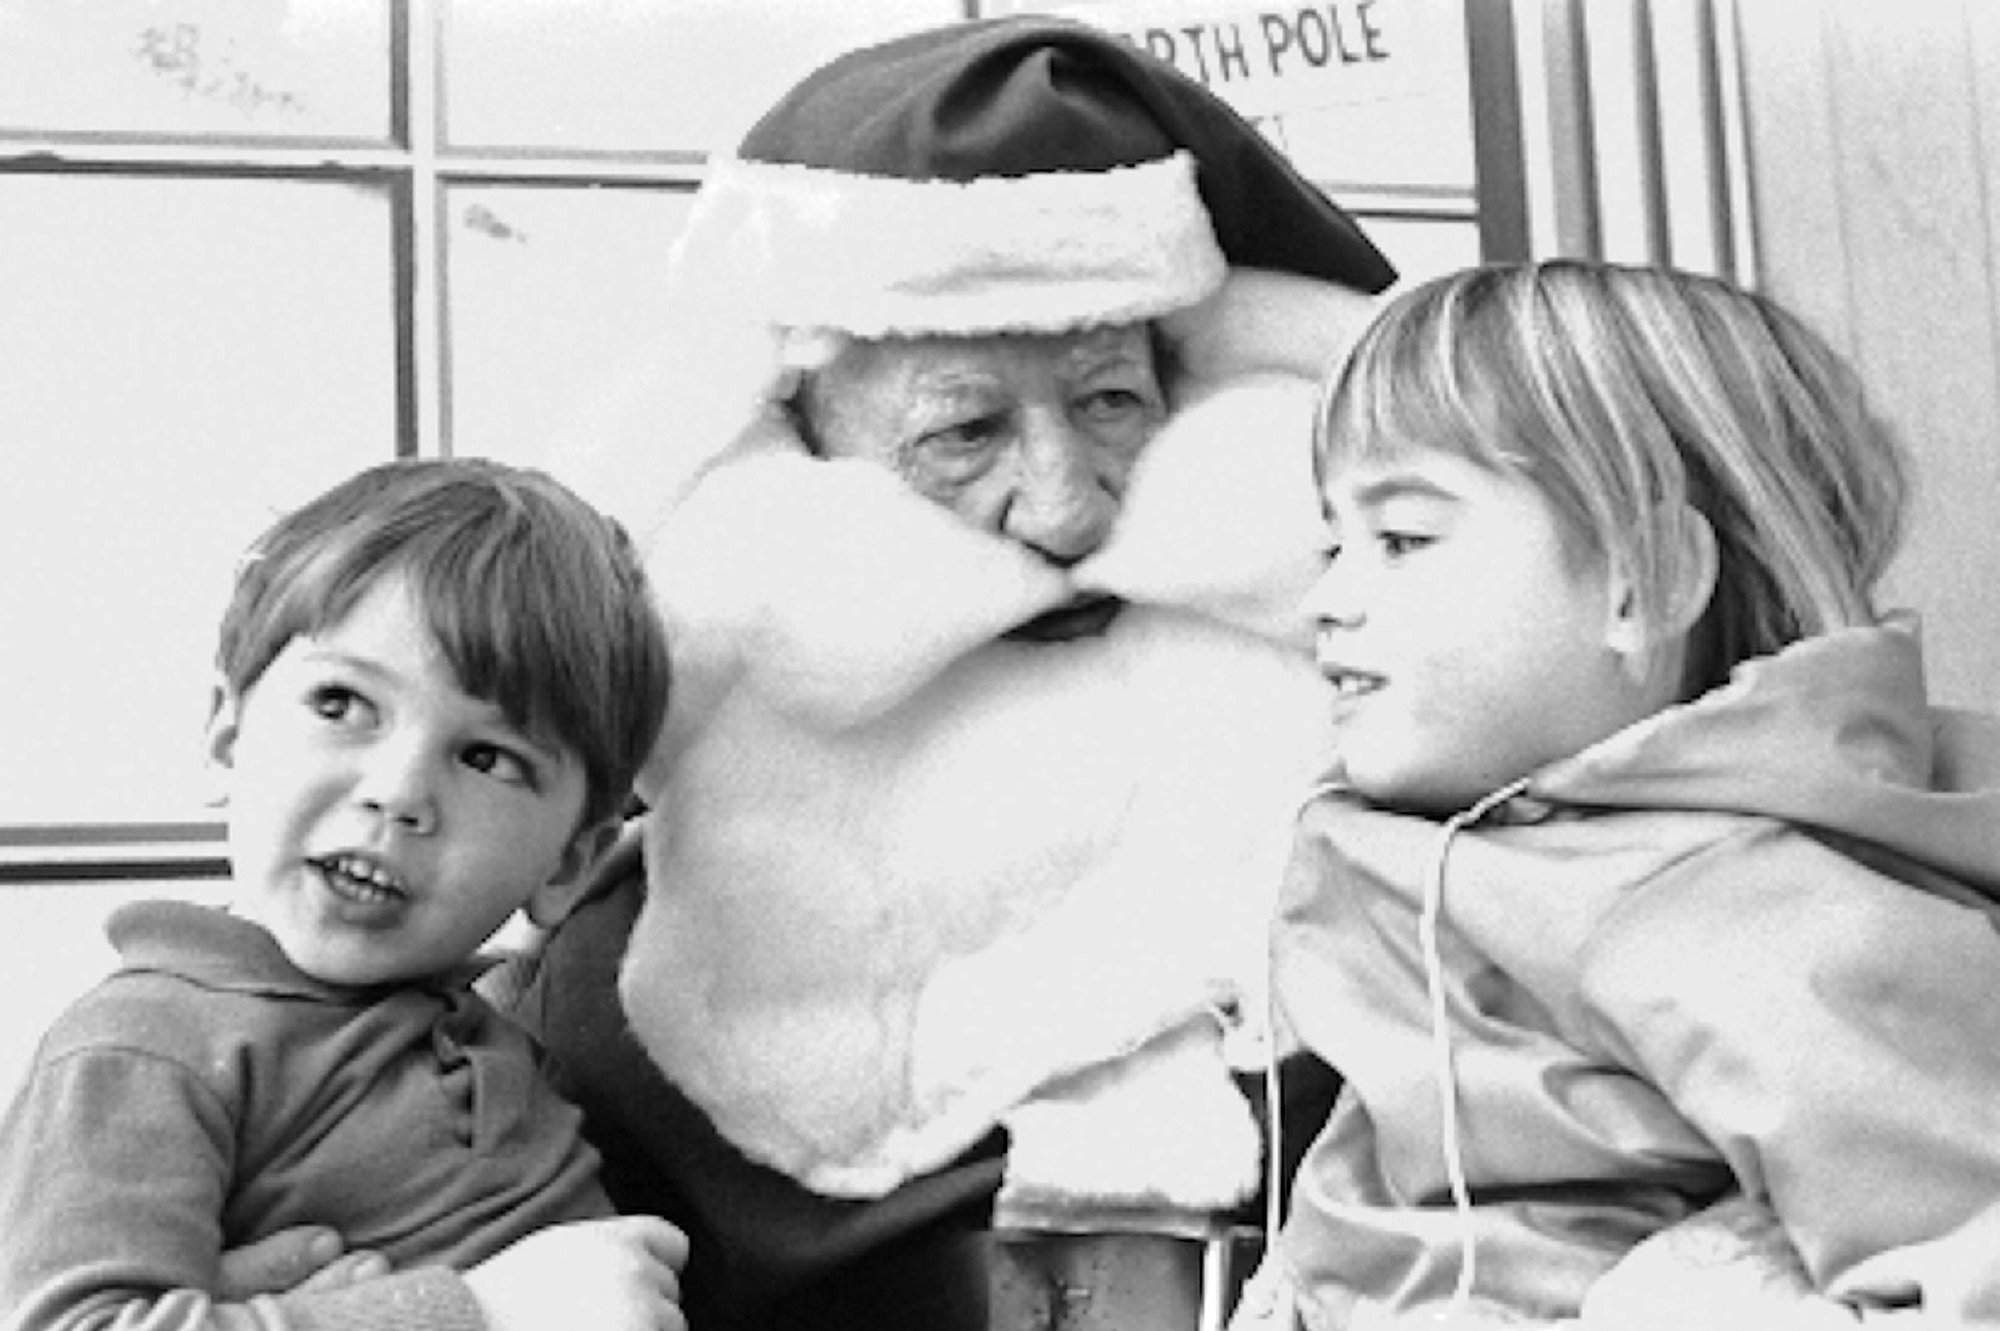 Children greet Santa at Woolco in Sumter in 1969.